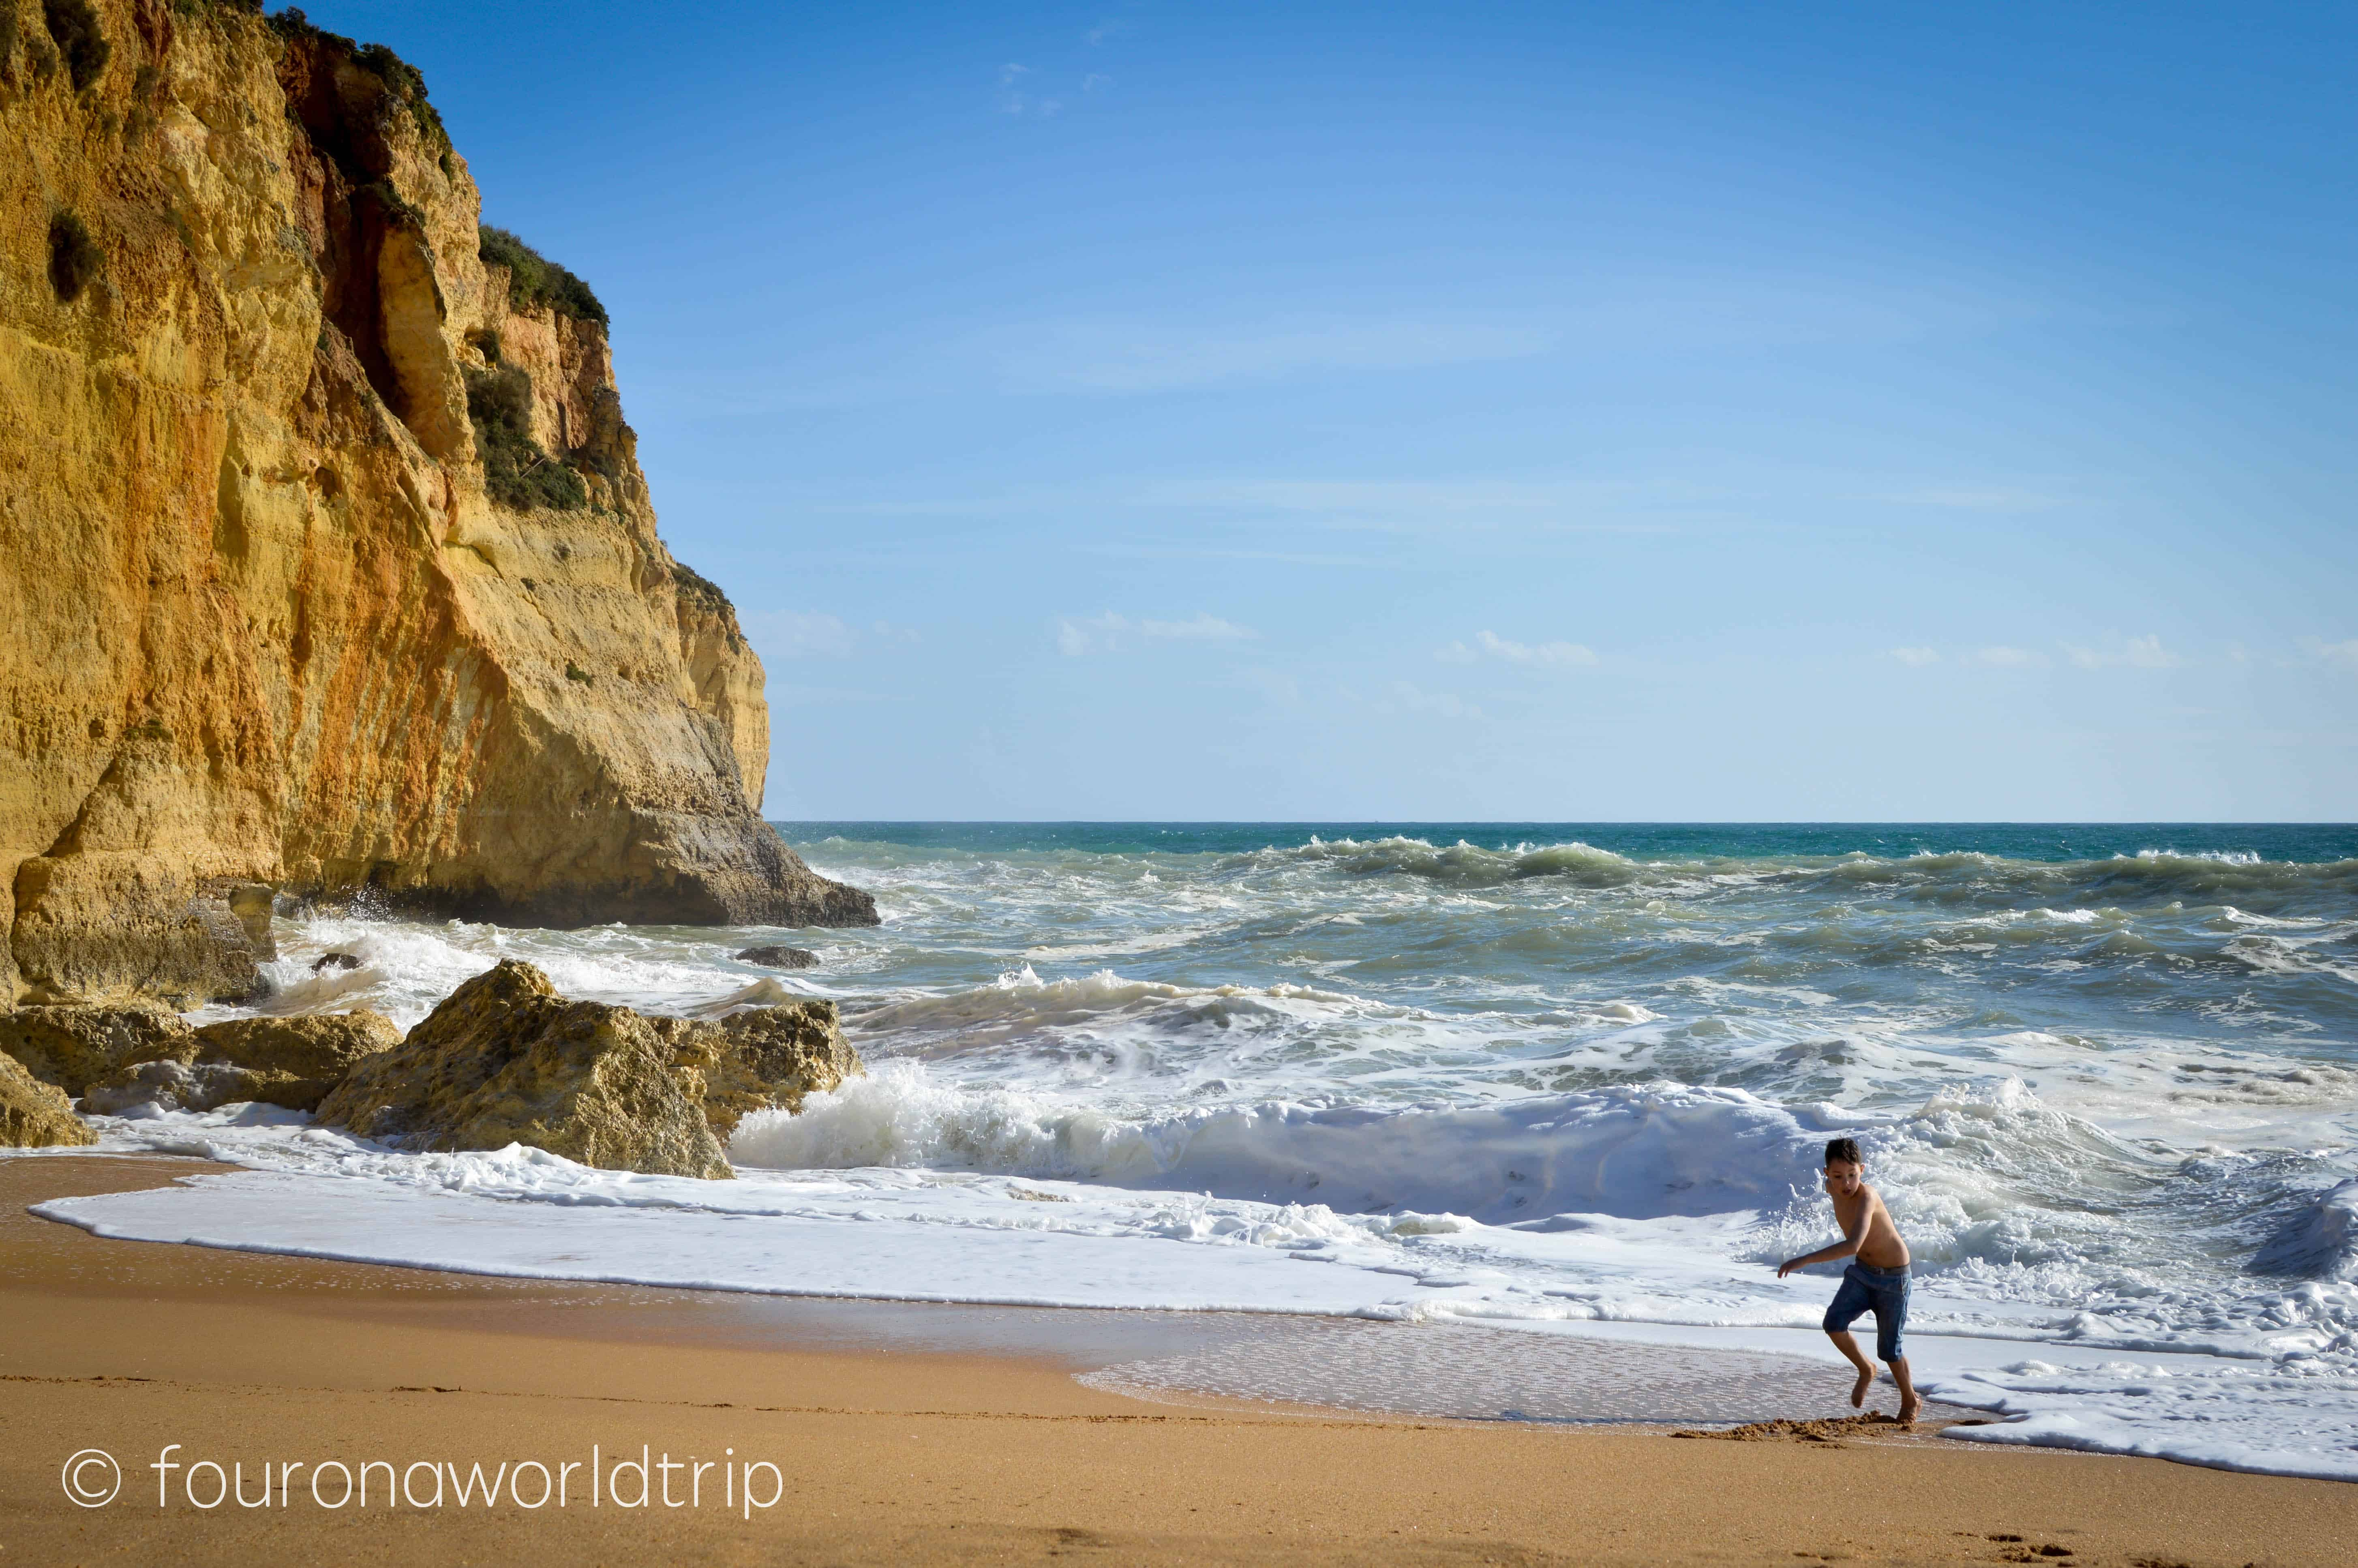 Thats also Algarve in Winter - we have been there in February and even though the average temperate lay around 16°C, it was way warmer.